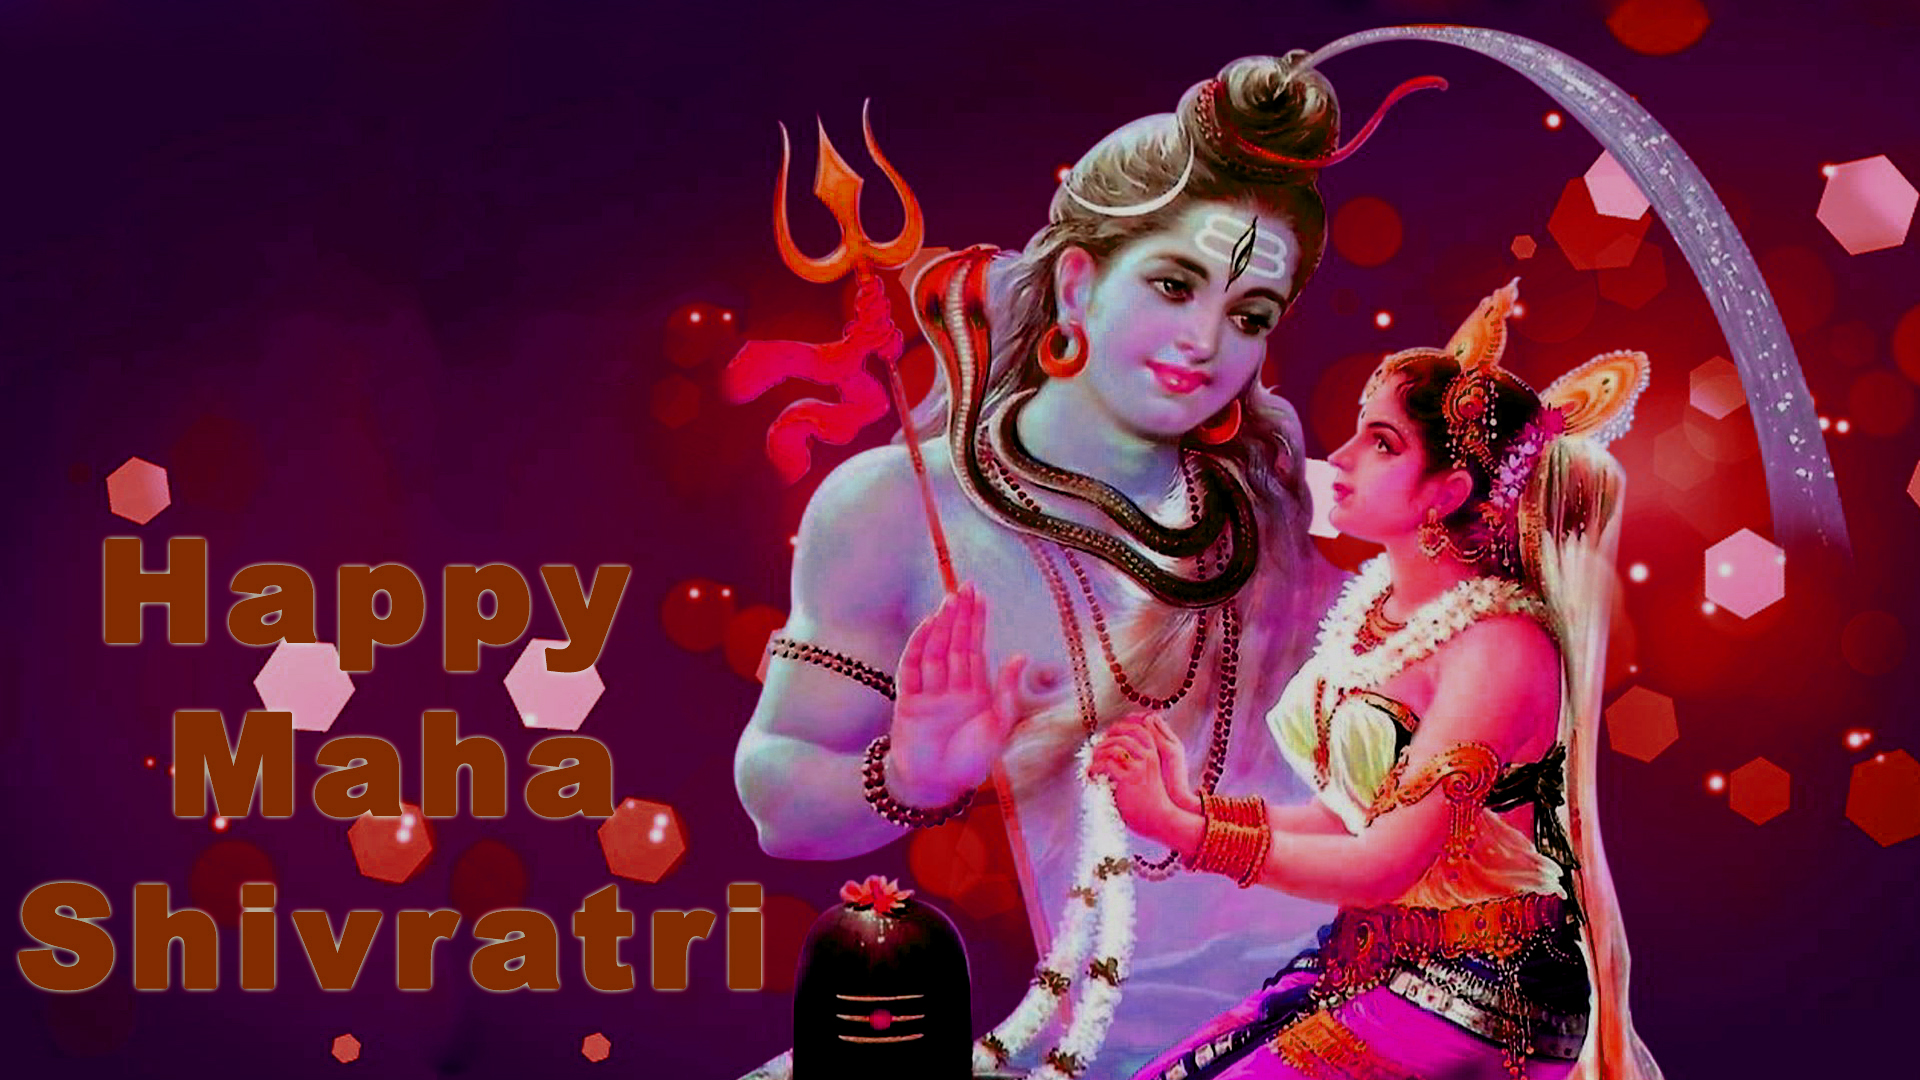 Shivratri Beautiful Pictures Of Lord Shiva And Parvati